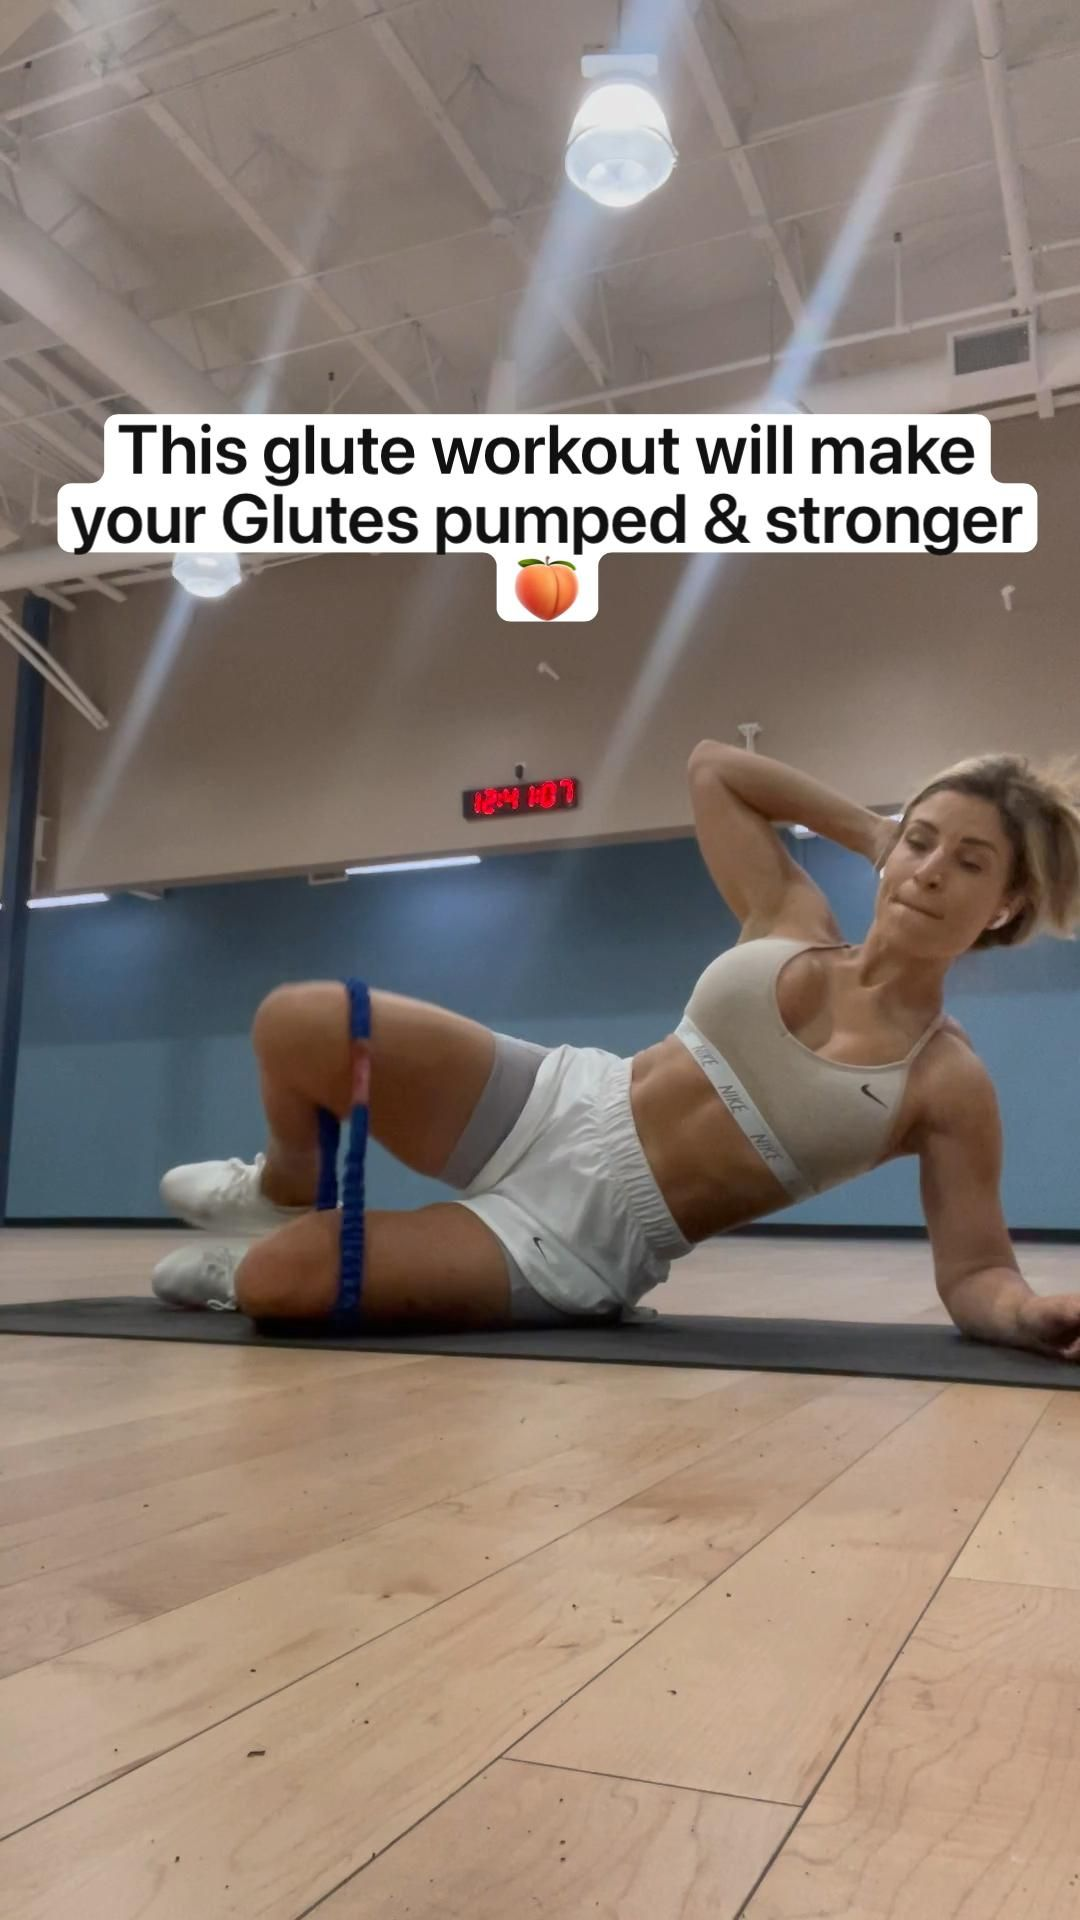 This glute workout will make your Glutes pumped & stronger 🍑